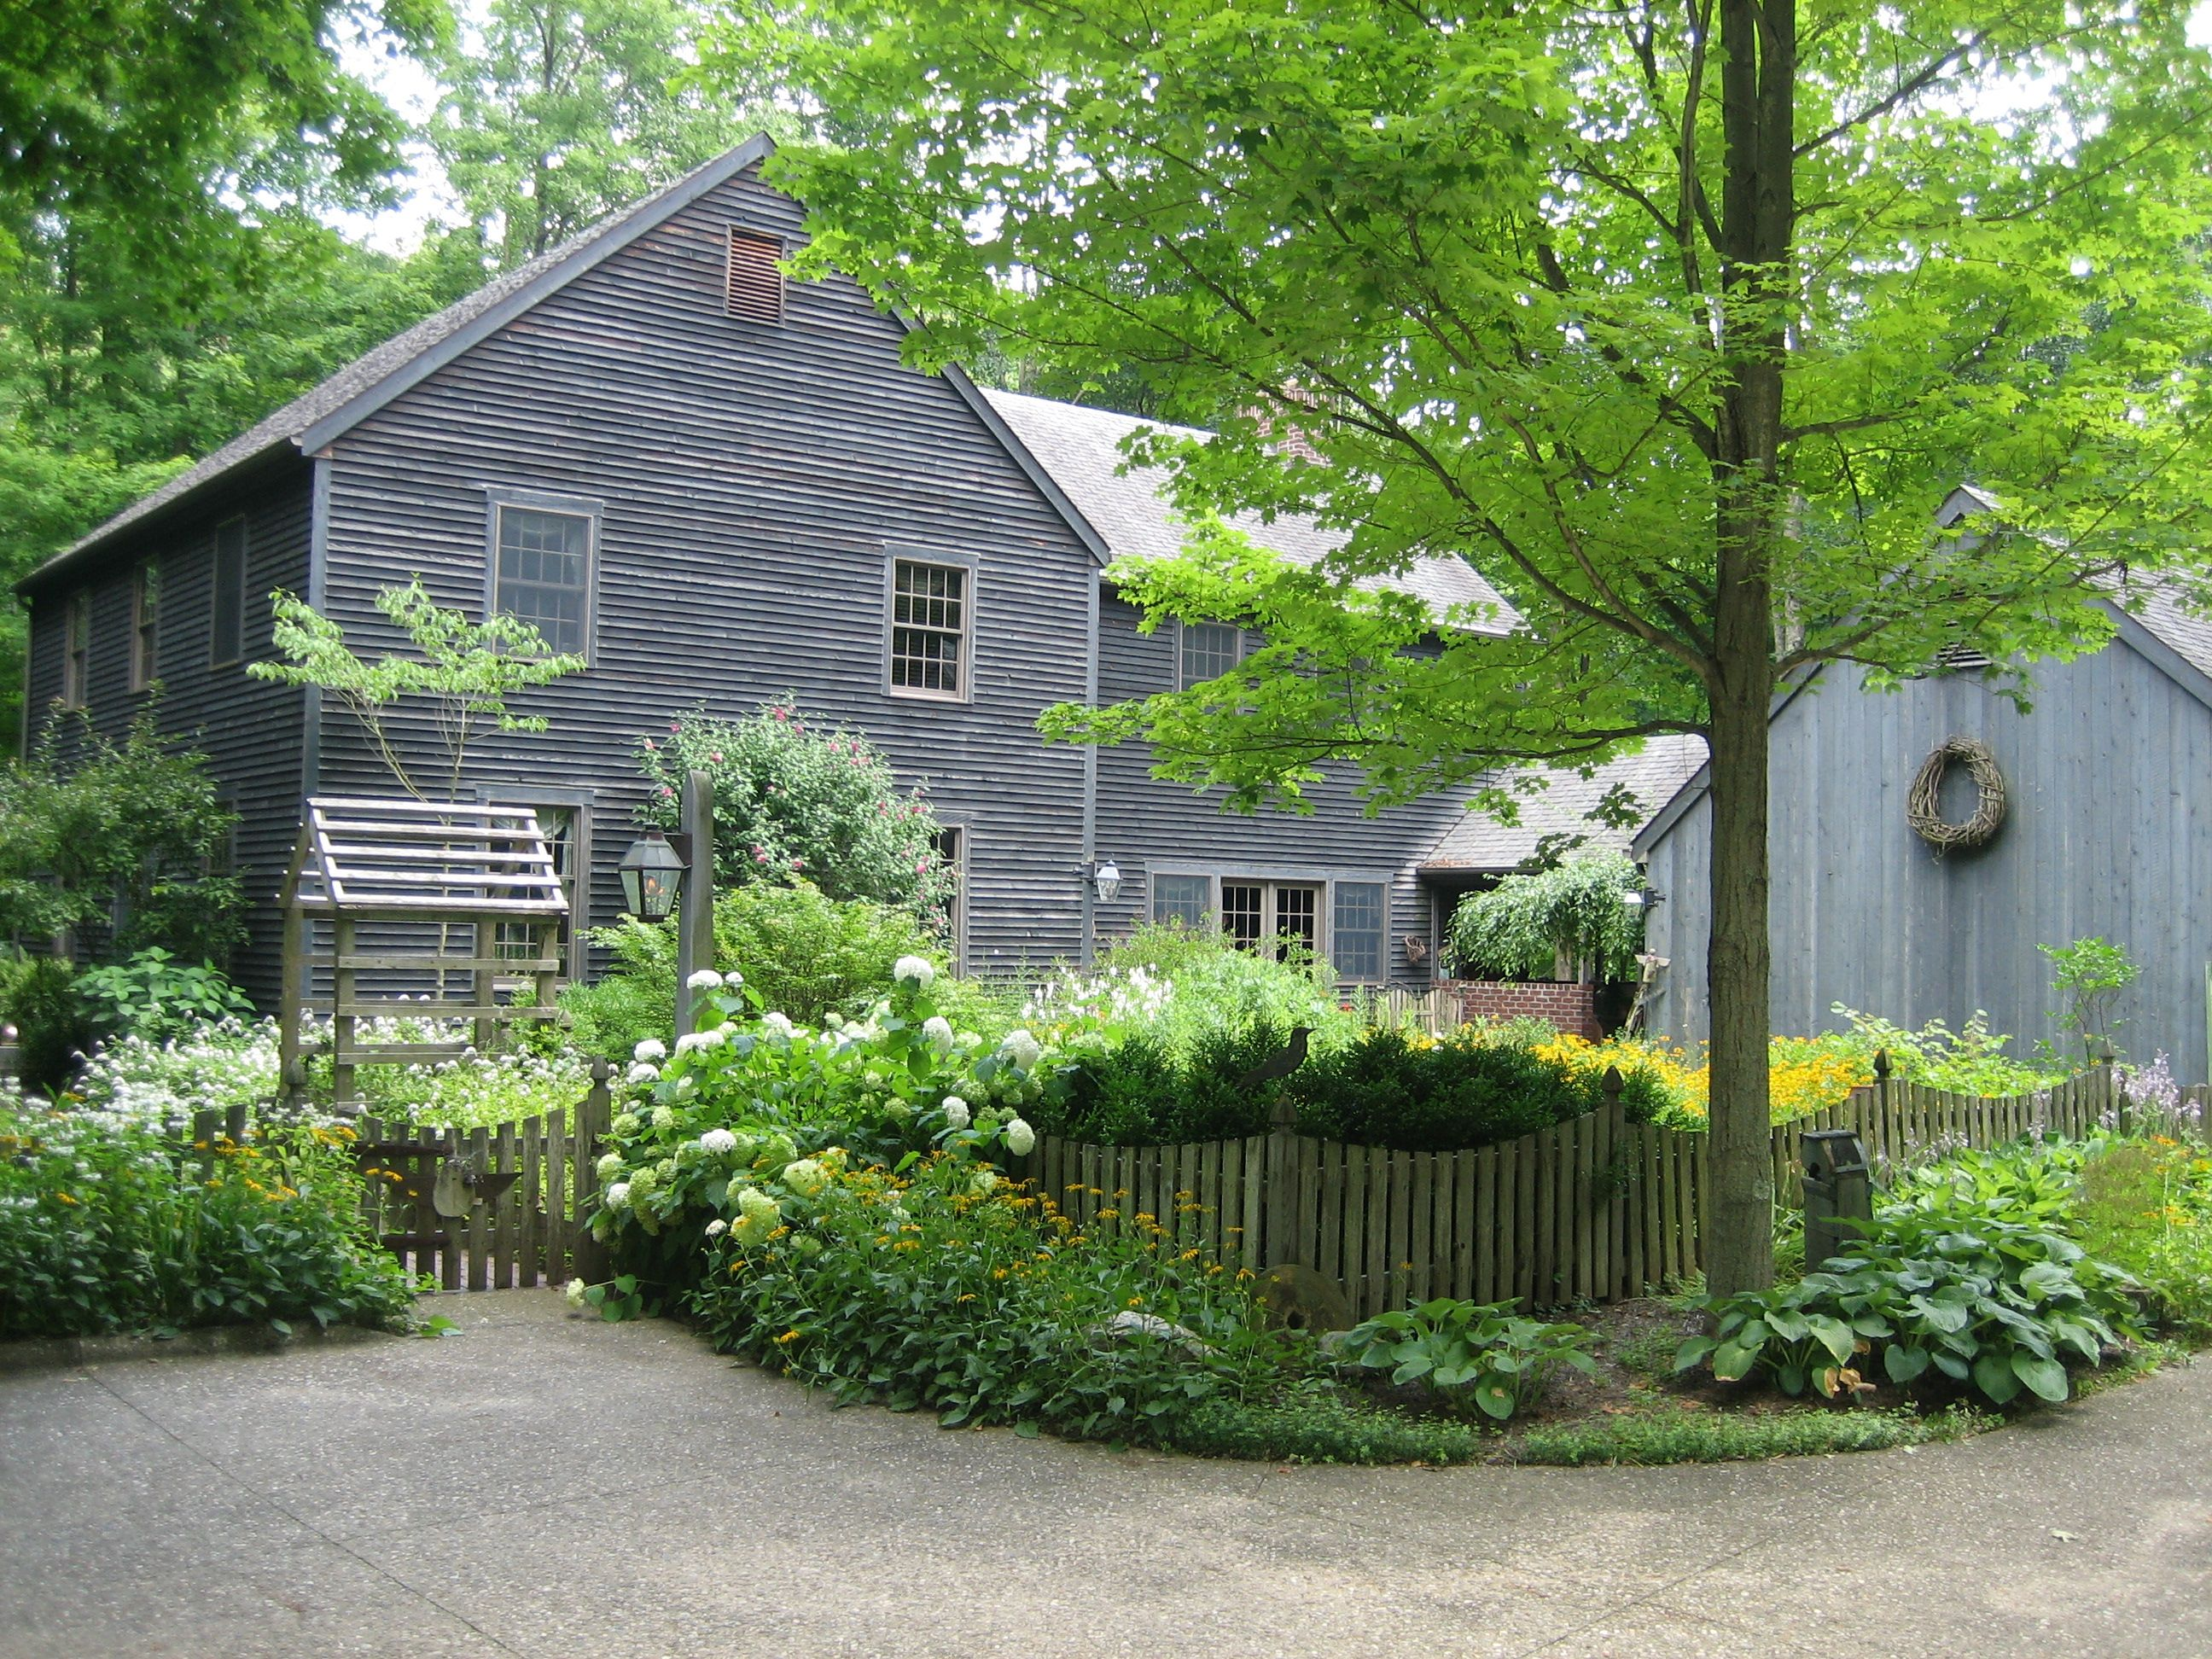 BUILT BY SONNY IN 1992 a colonial reproduction home designed by